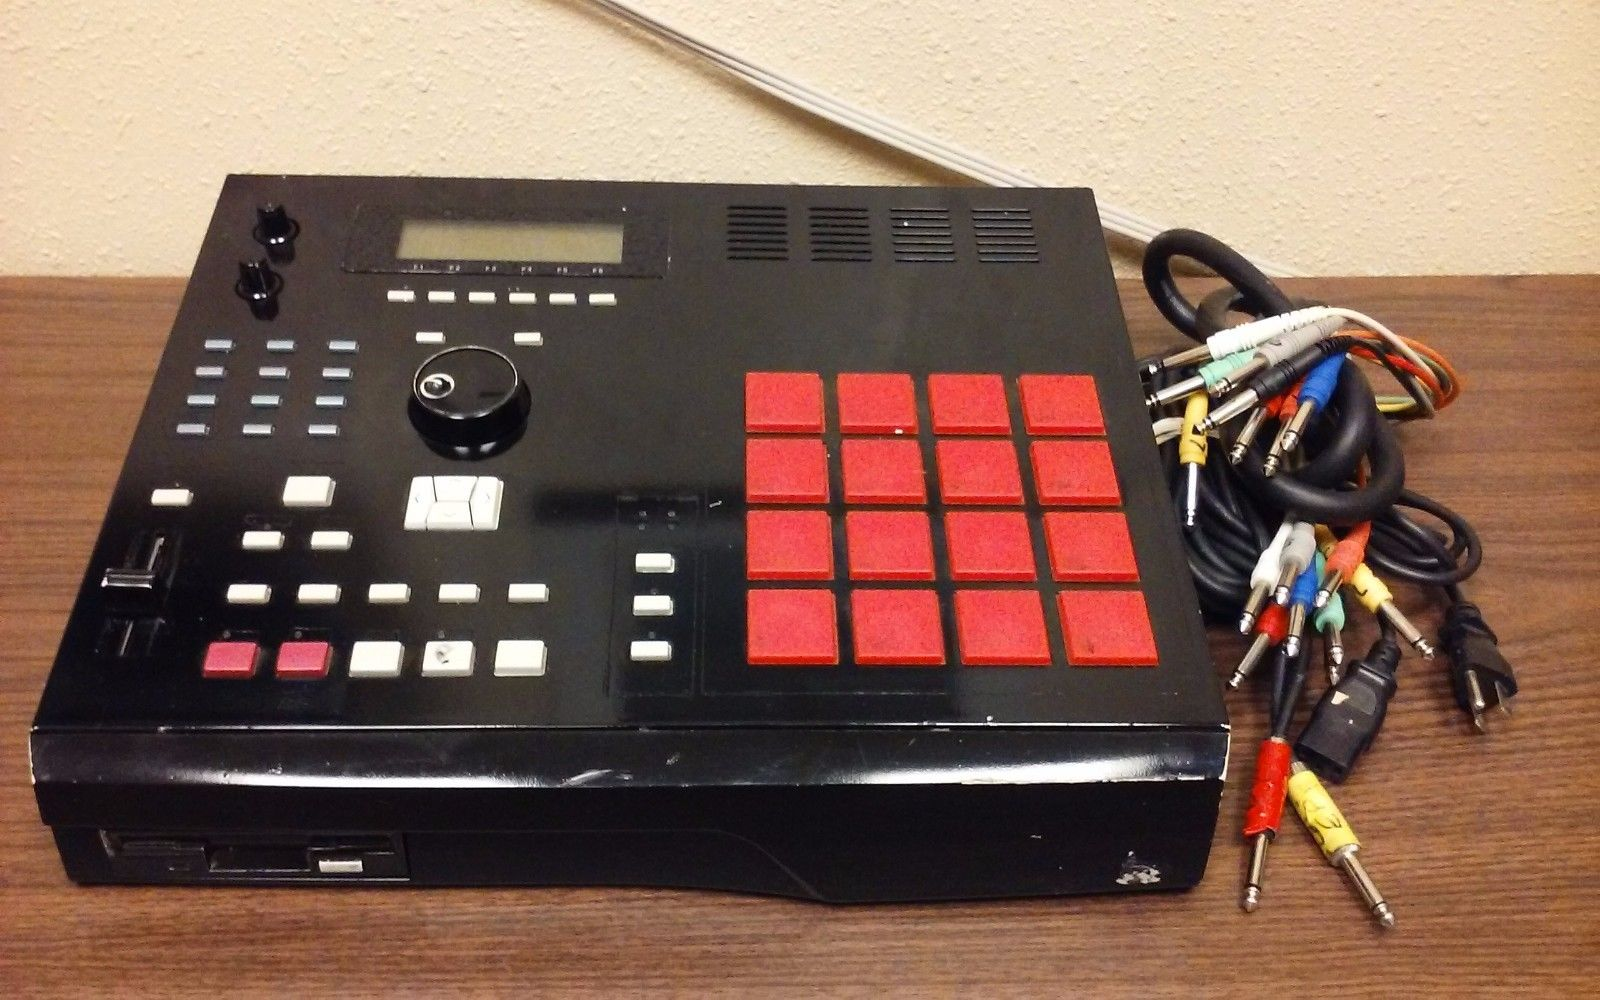 Mpchunter Blog Archive Custom Akai Mpc 2000 With 32mb Ram 8 Outs